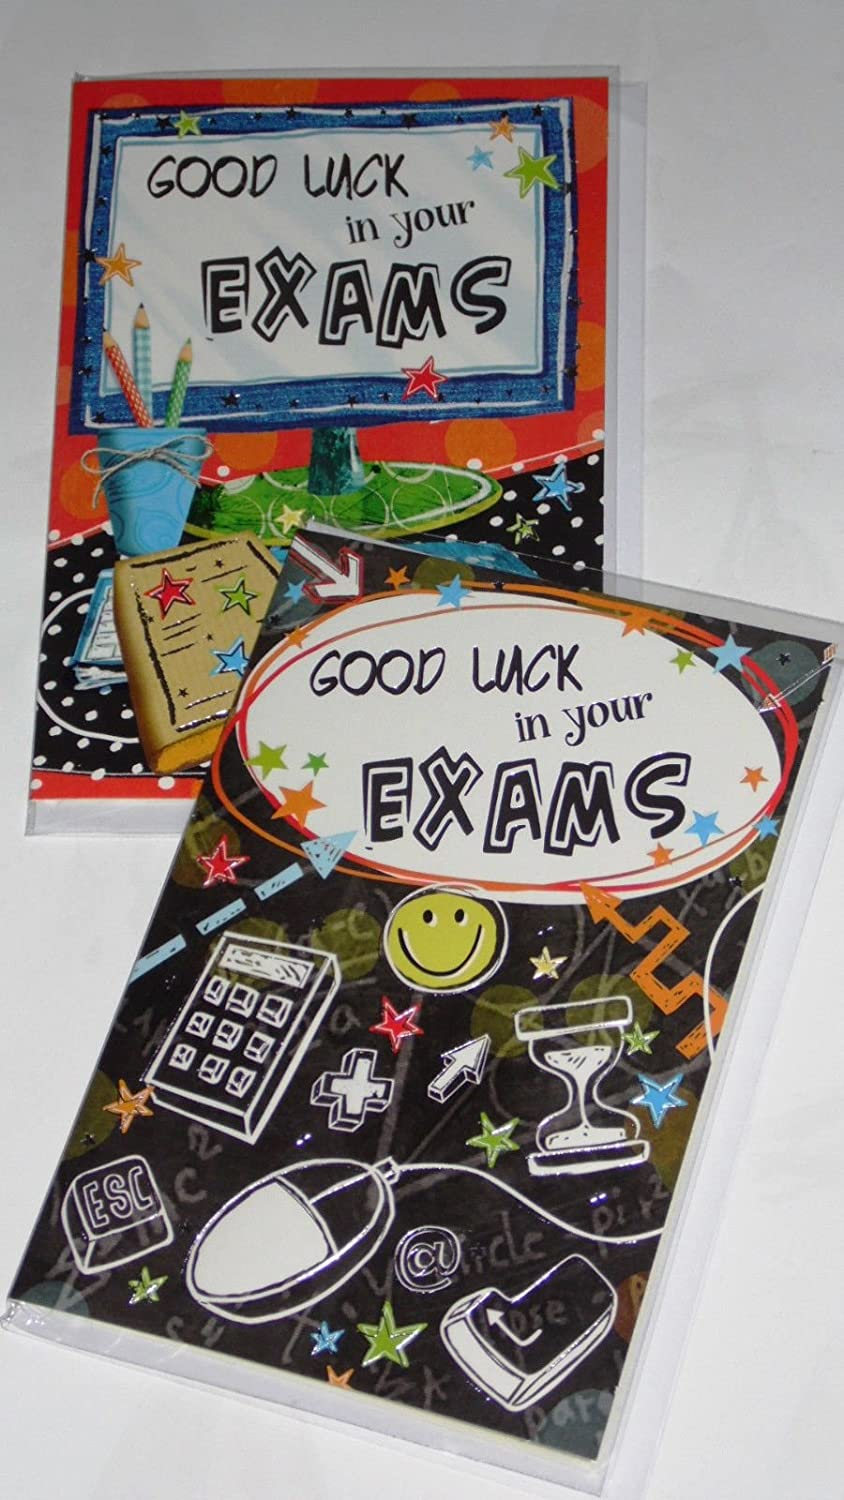 2 Good Luck Exams Cards 2 Designs X 1 Foiled-Wrapped